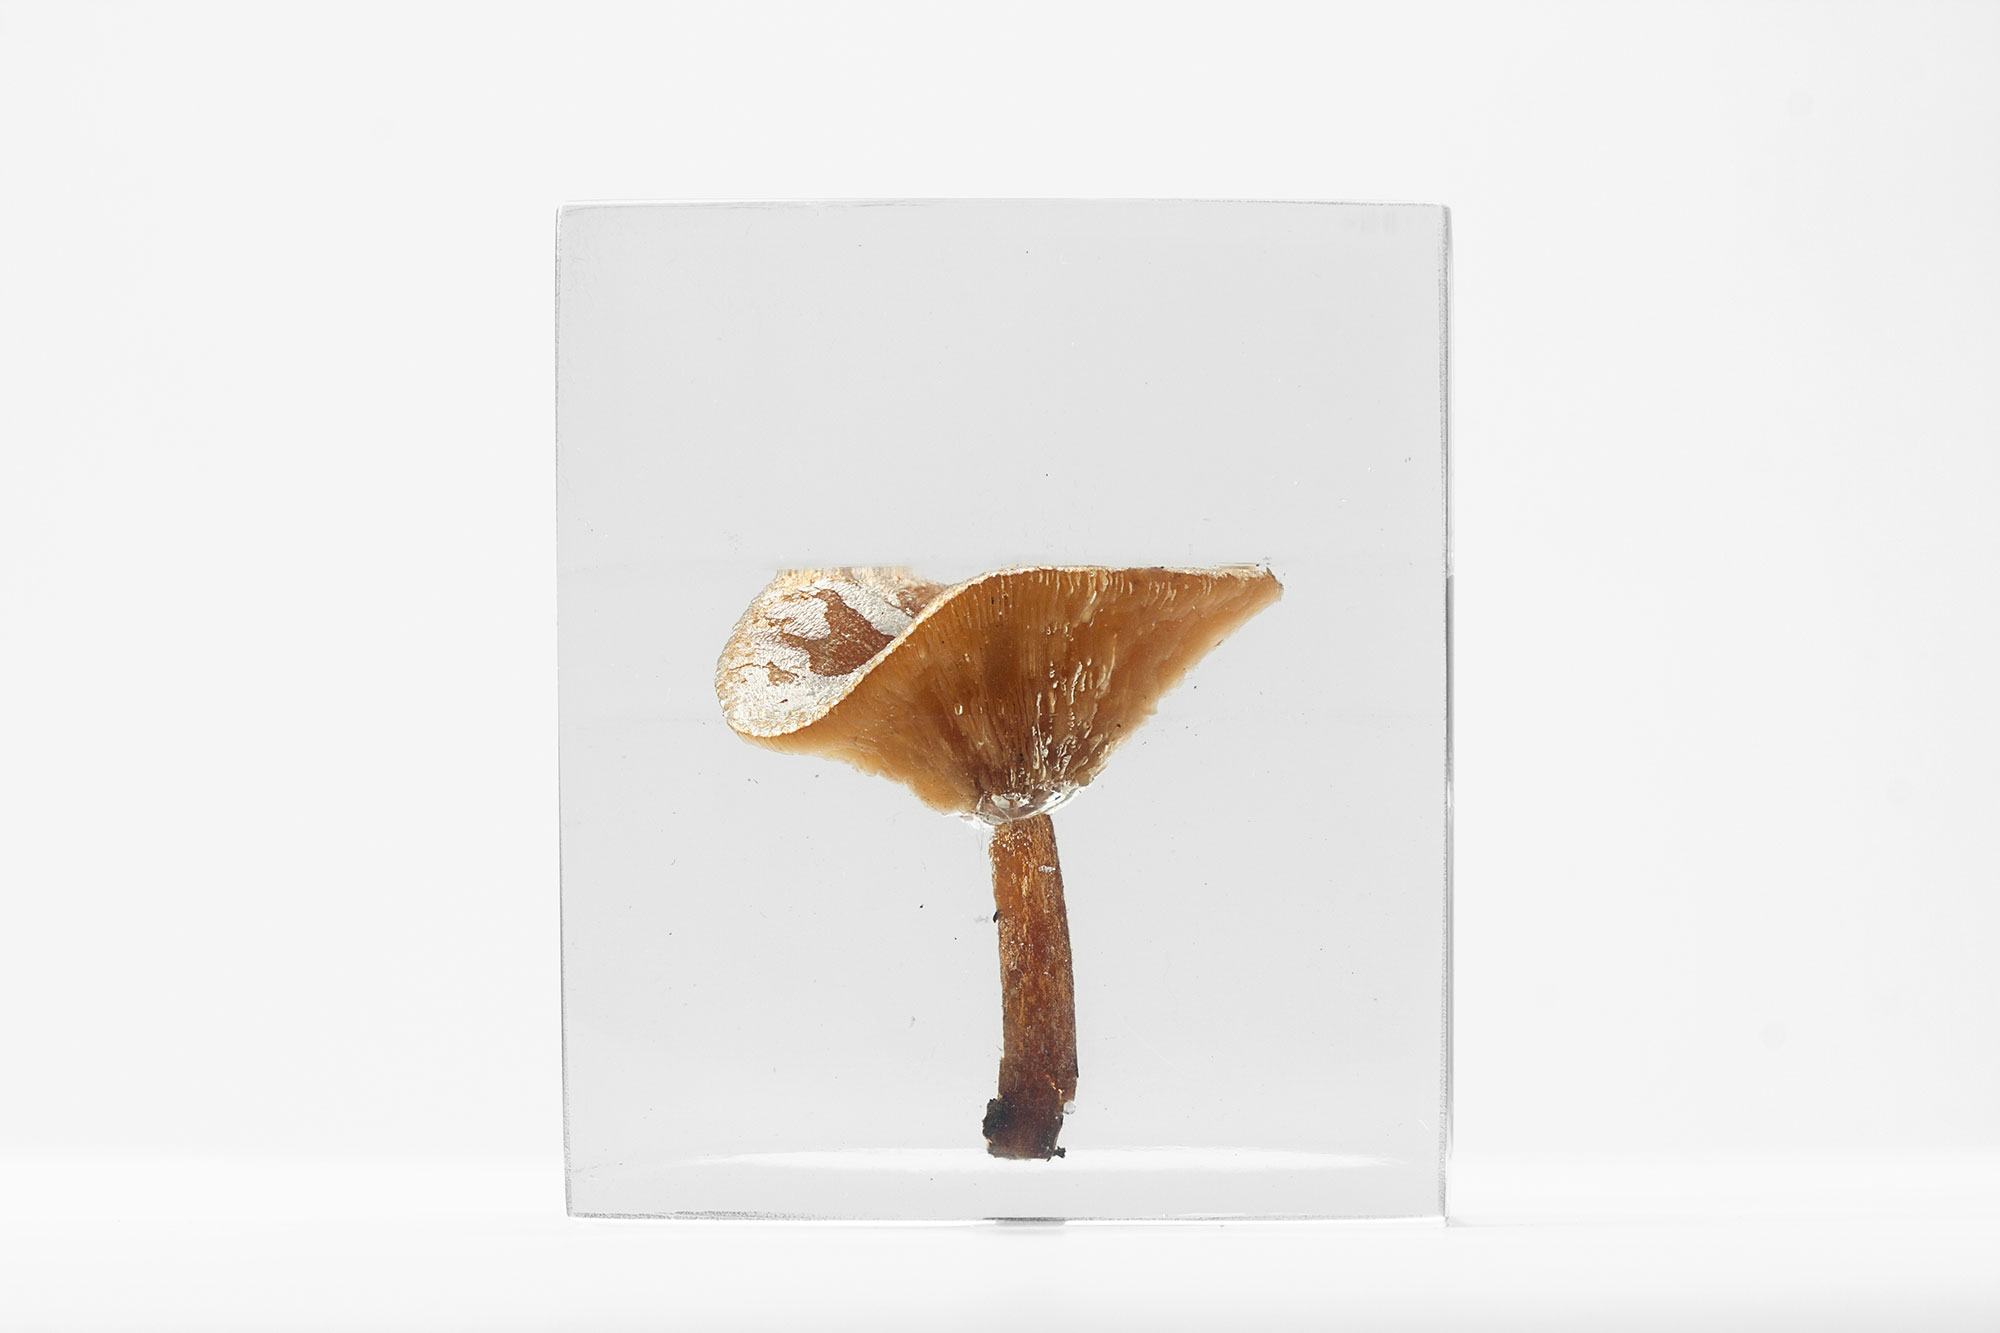 Art, The Flowery Dream: Specimen 13, 2010